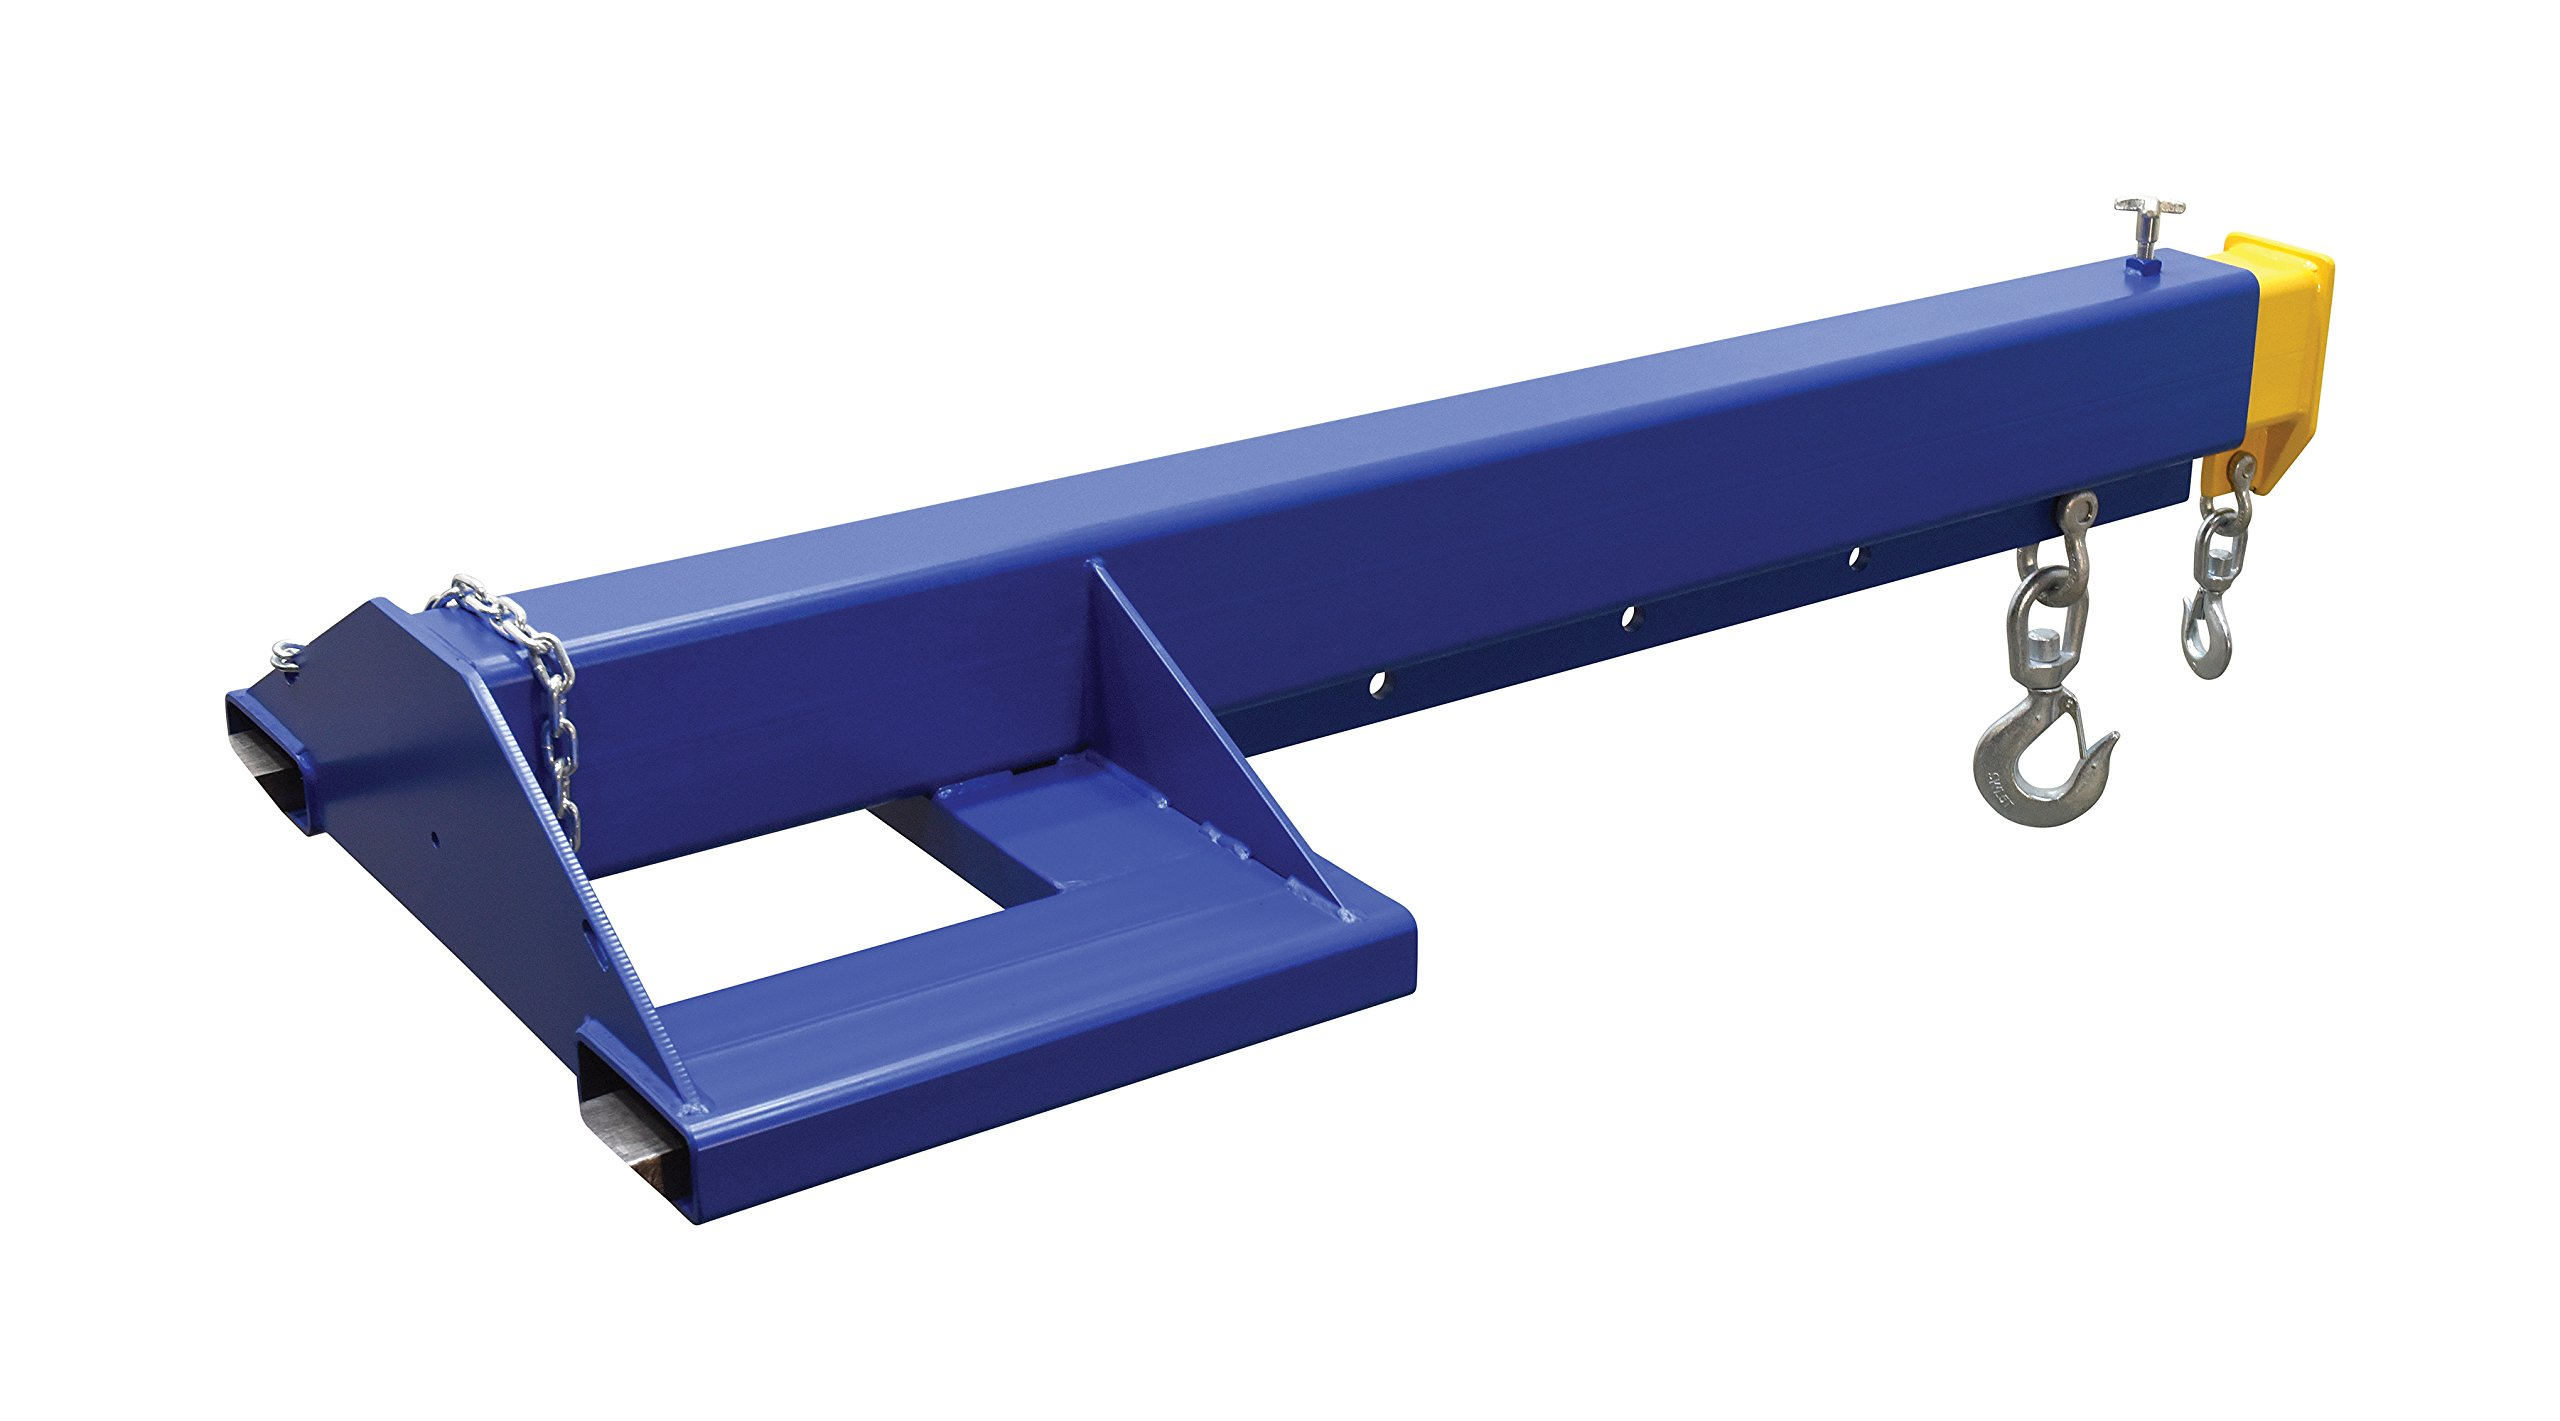 Vestil LM-EBT-8-36 Steel Telescoping Lift Master Fork Truck Boom, 8,000-lb. Capacity, Overall LxWxH (in.) 44 x 84.875 x 15, Overall Extended Length (in.) 149-3/8